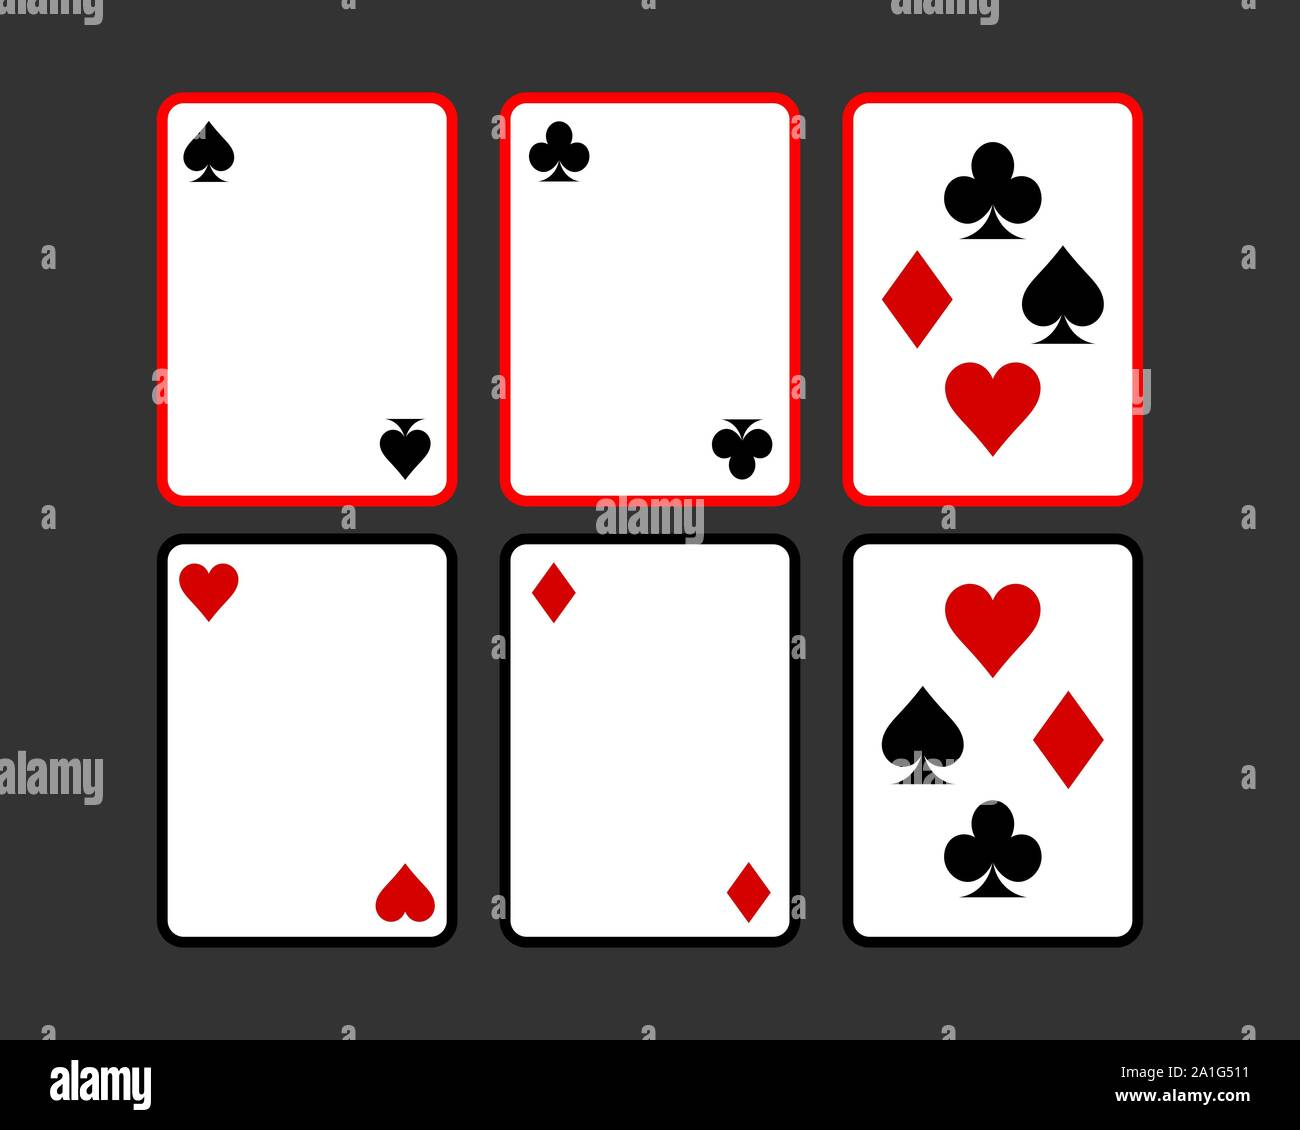 Playing Cards Vector Illustration Poker Playing Cards Template Stock Vector Image Art Alamy